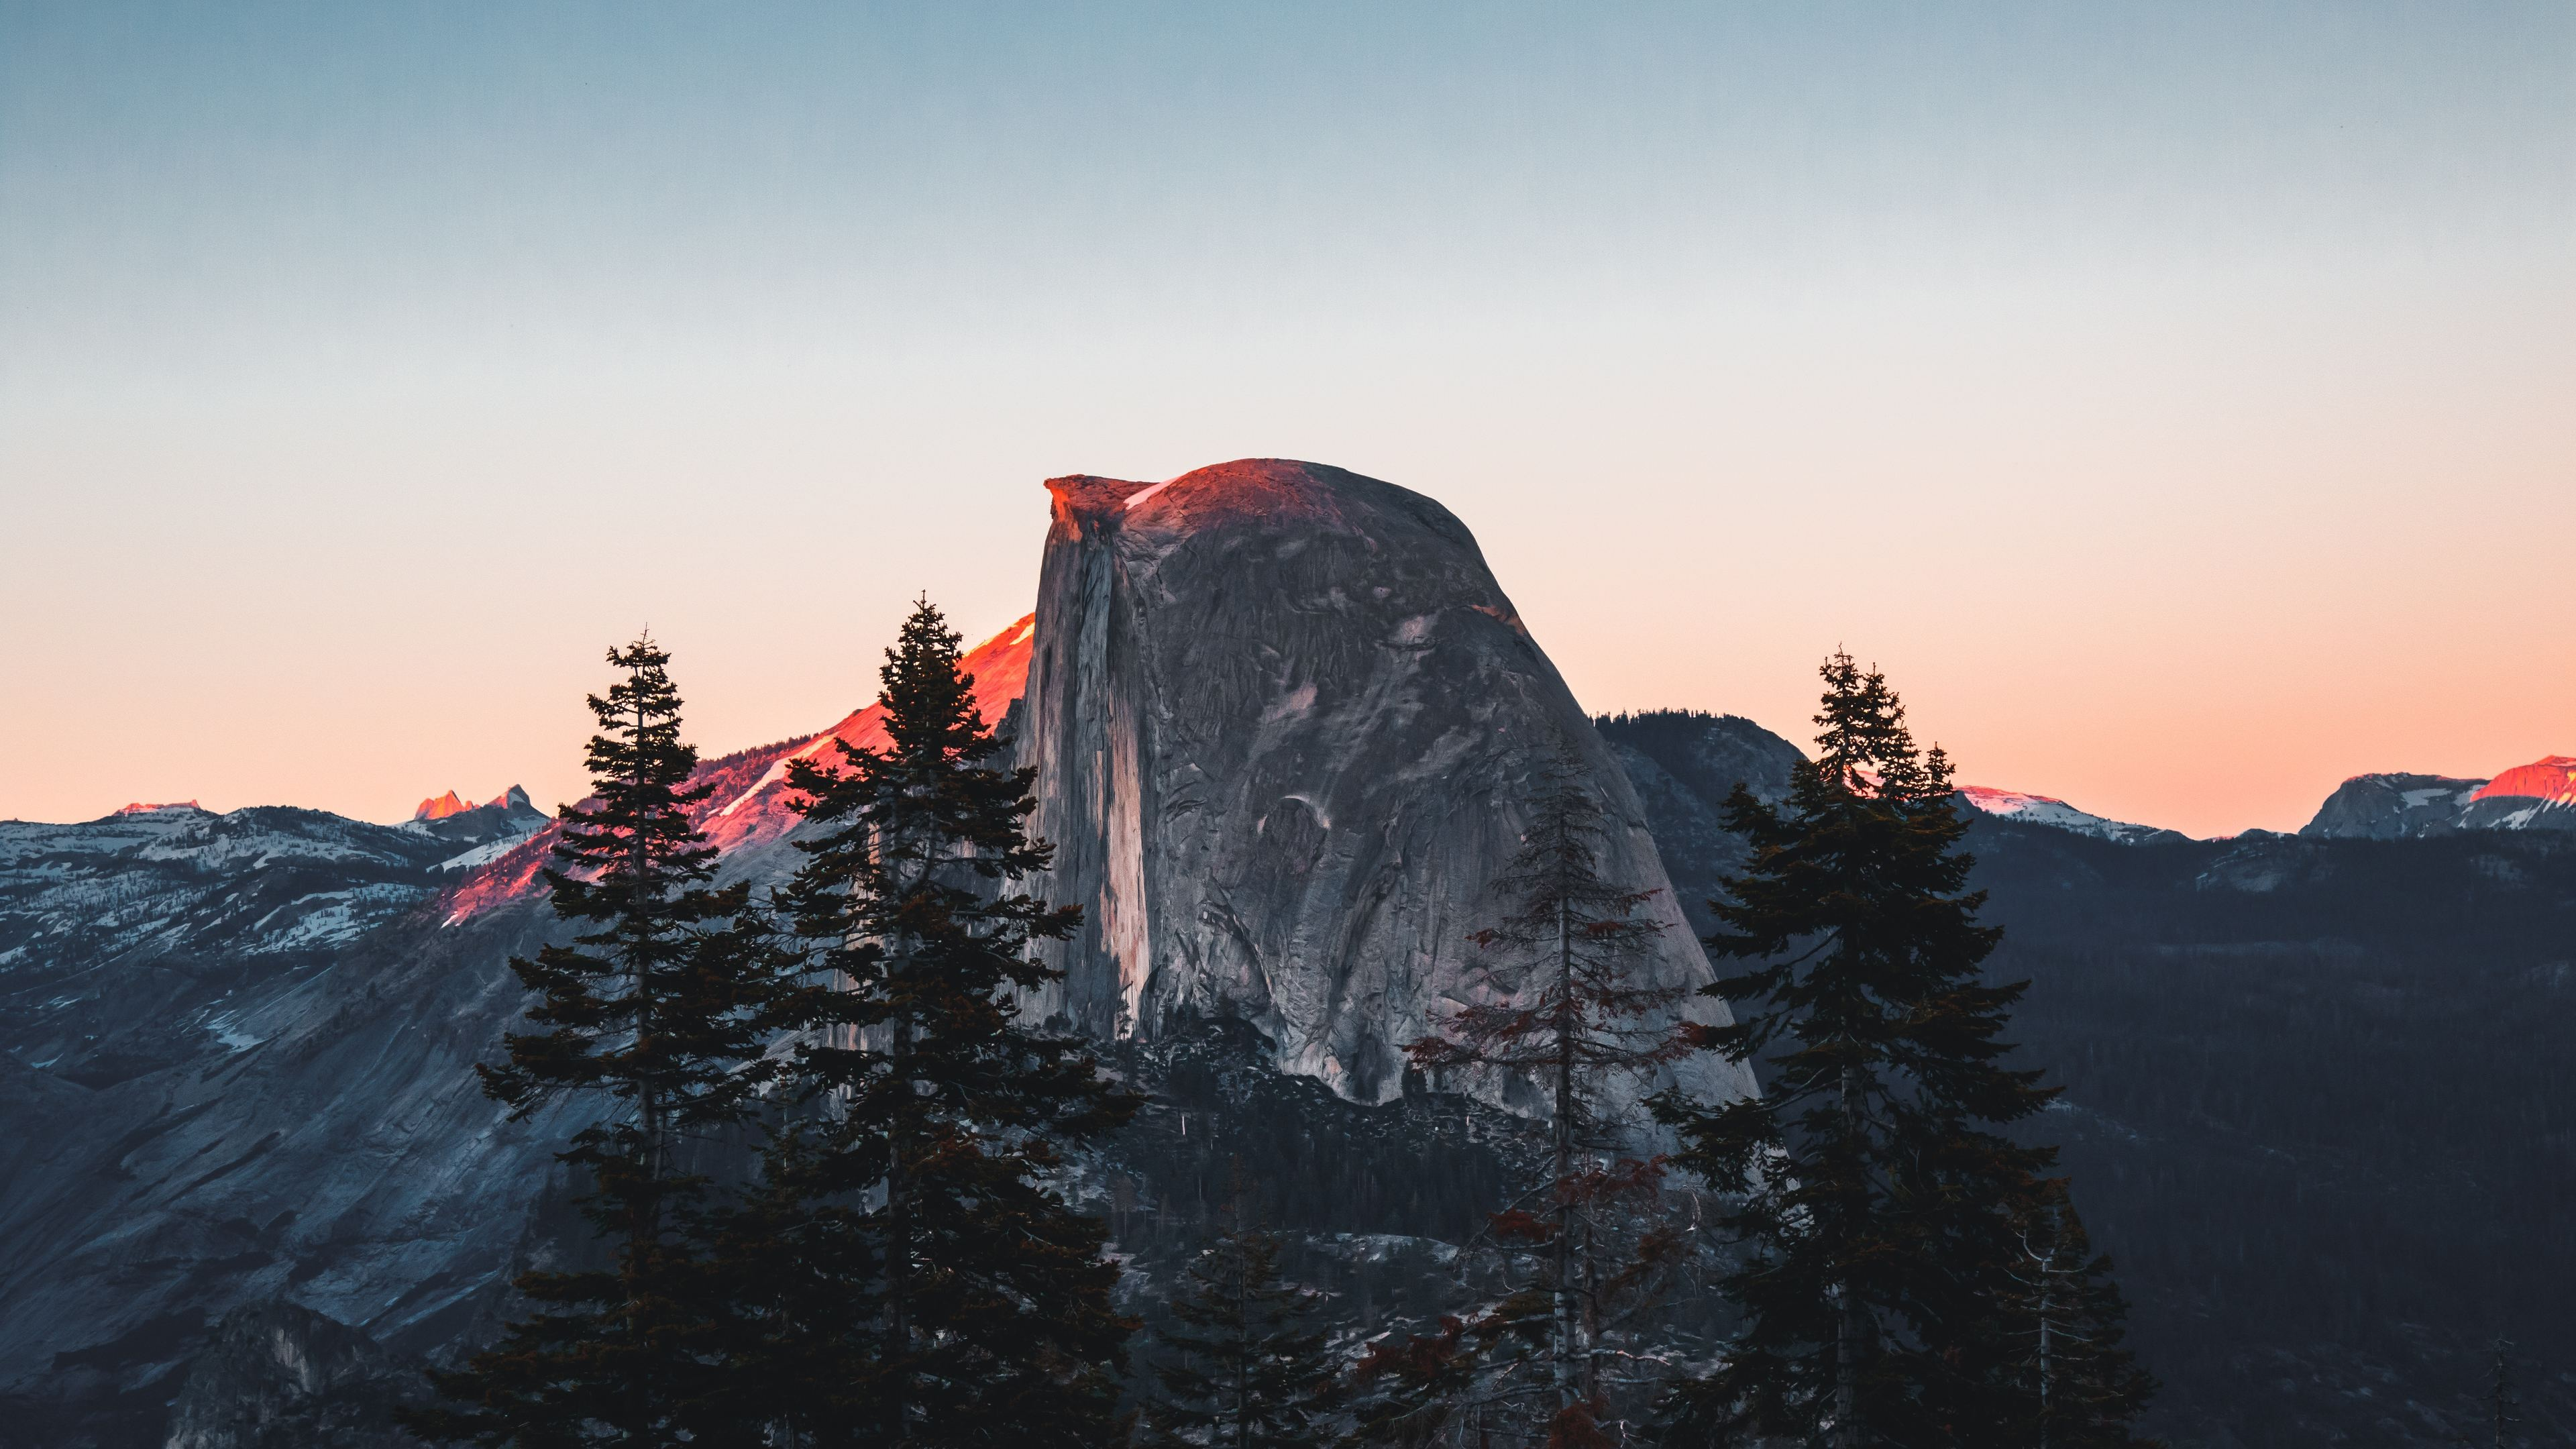 4k yosemite national park 1560535892 - 4k Yosemite National Park - yosemite wallpapers, nature wallpapers, national park wallpapers, hd-wallpapers, 4k-wallpapers